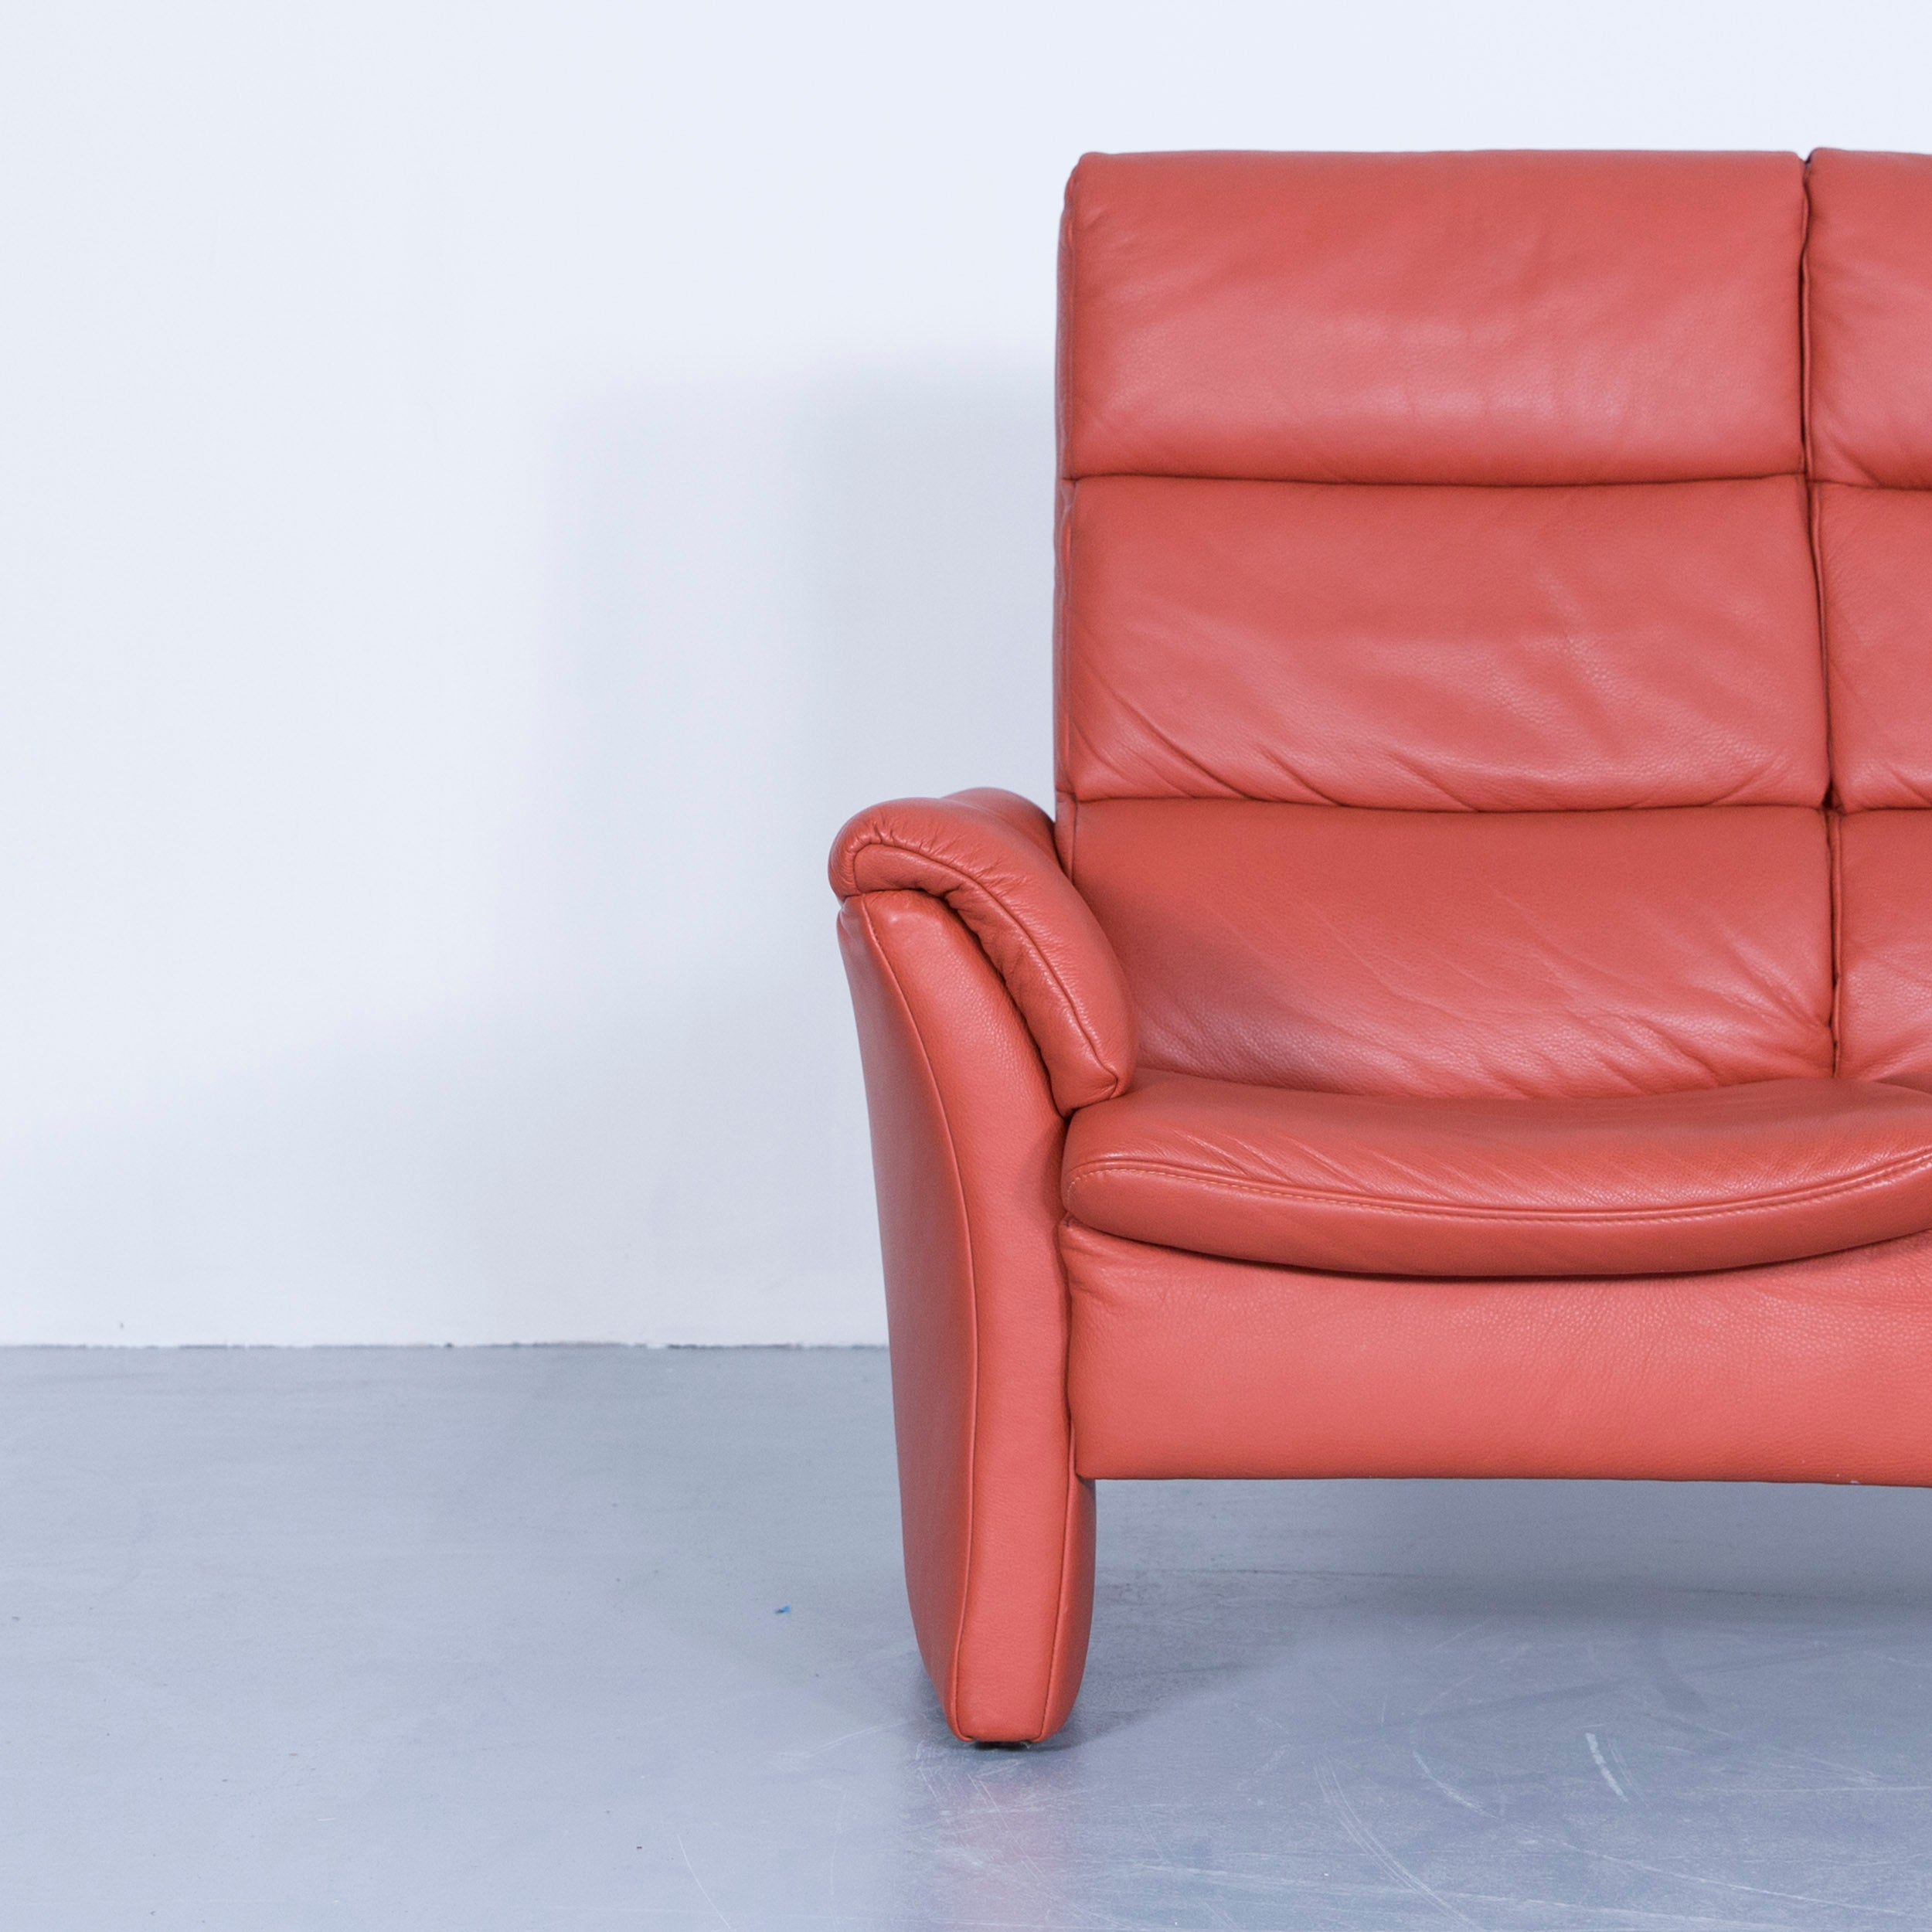 Innenarchitektur Himolla Zerostress Ideen Von Two-seat Sofa Leather Orange Relax One Seat